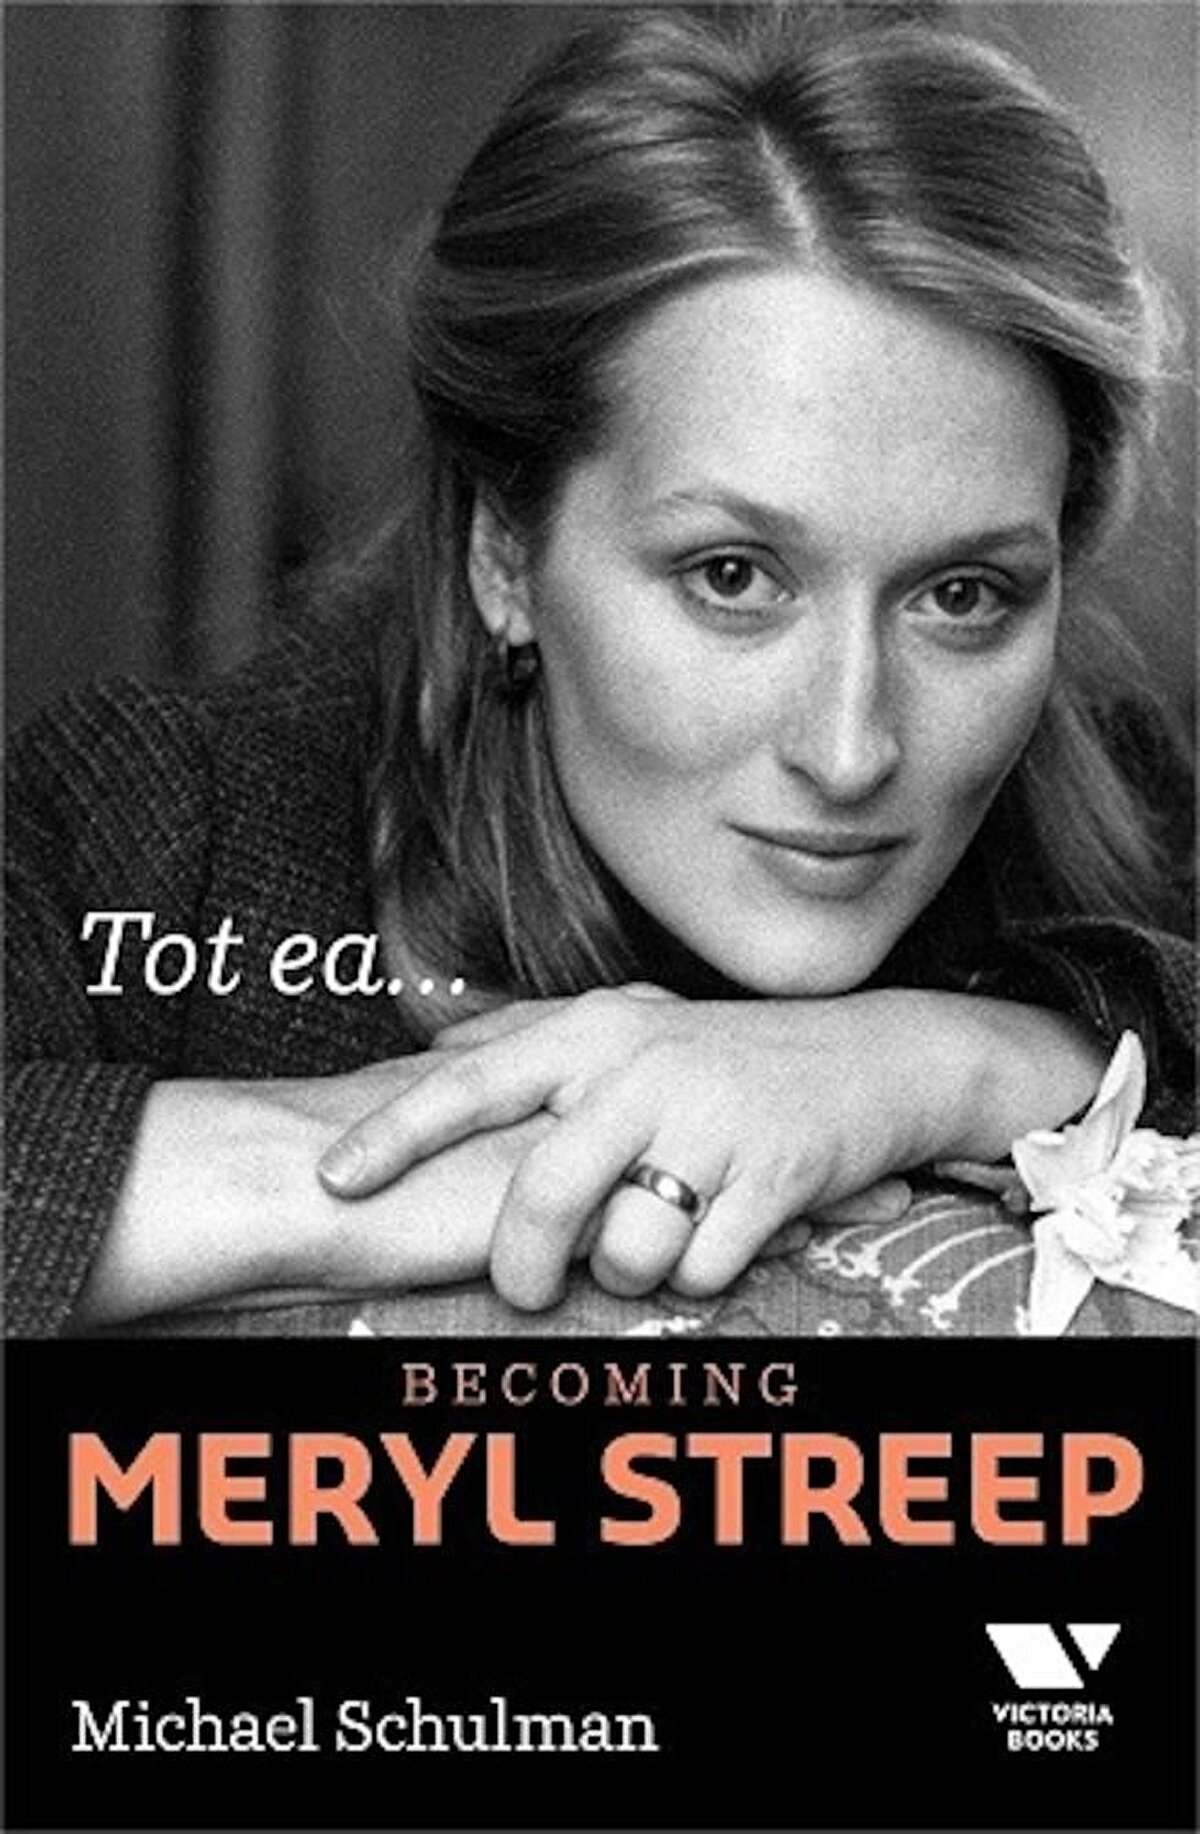 Tot ea...Becoming Mery Streep